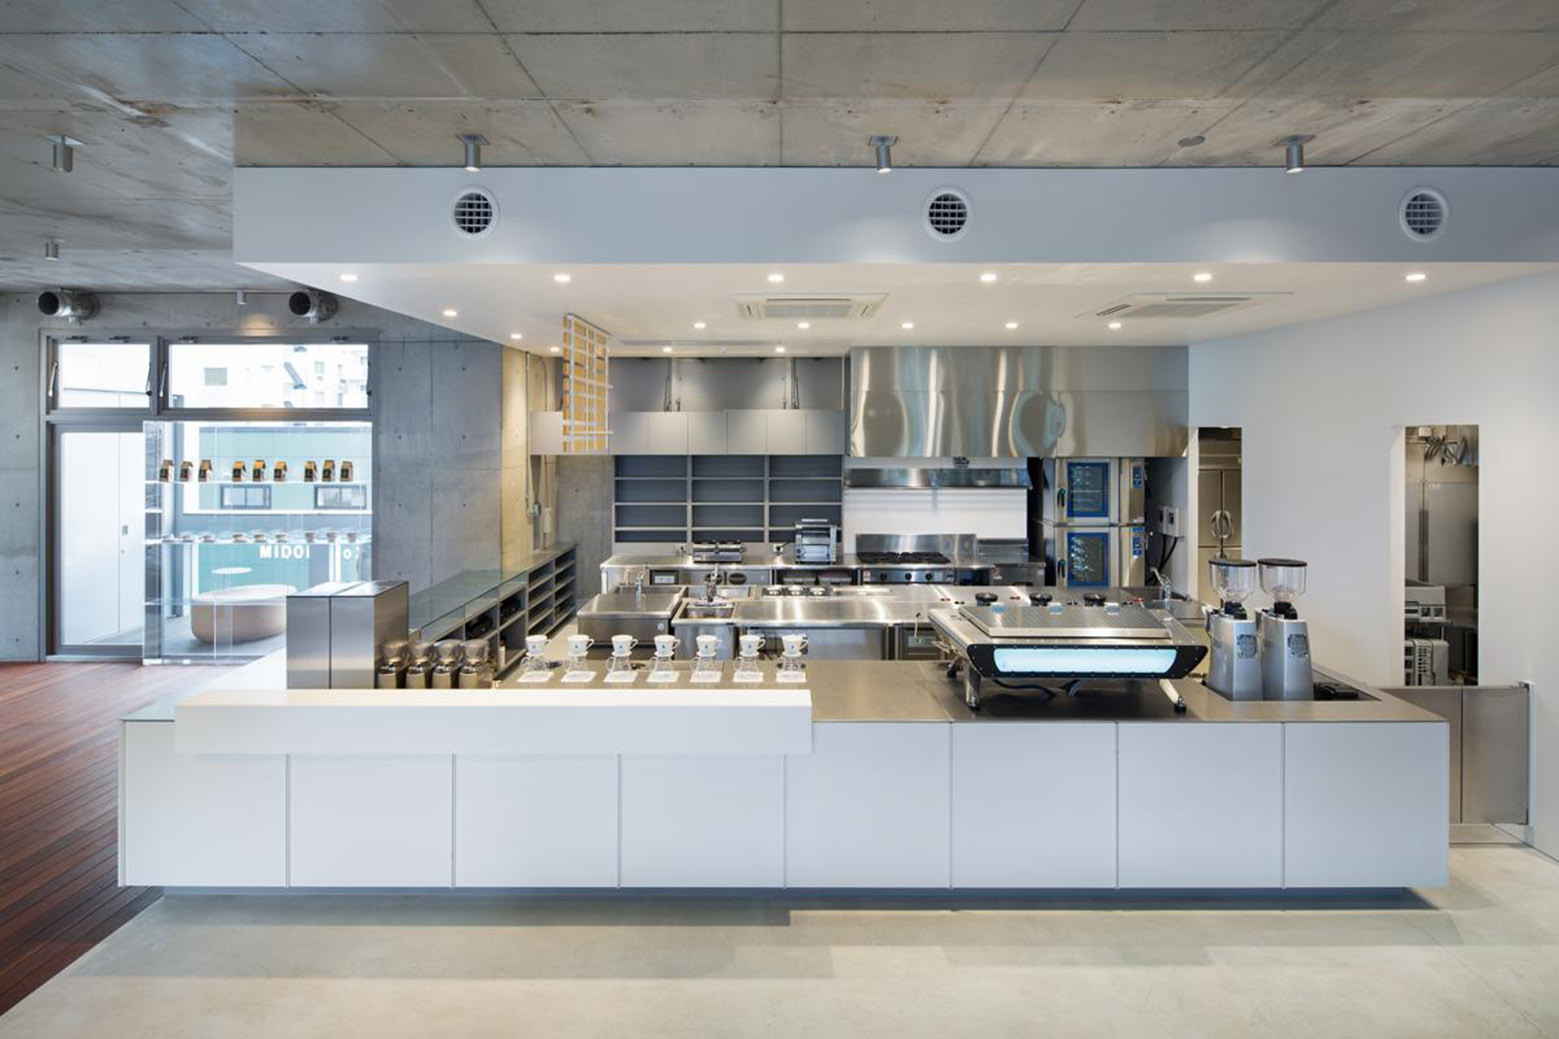 Blue Bottle Coffee Cafe / Schemata Architects, © Takumi Ota